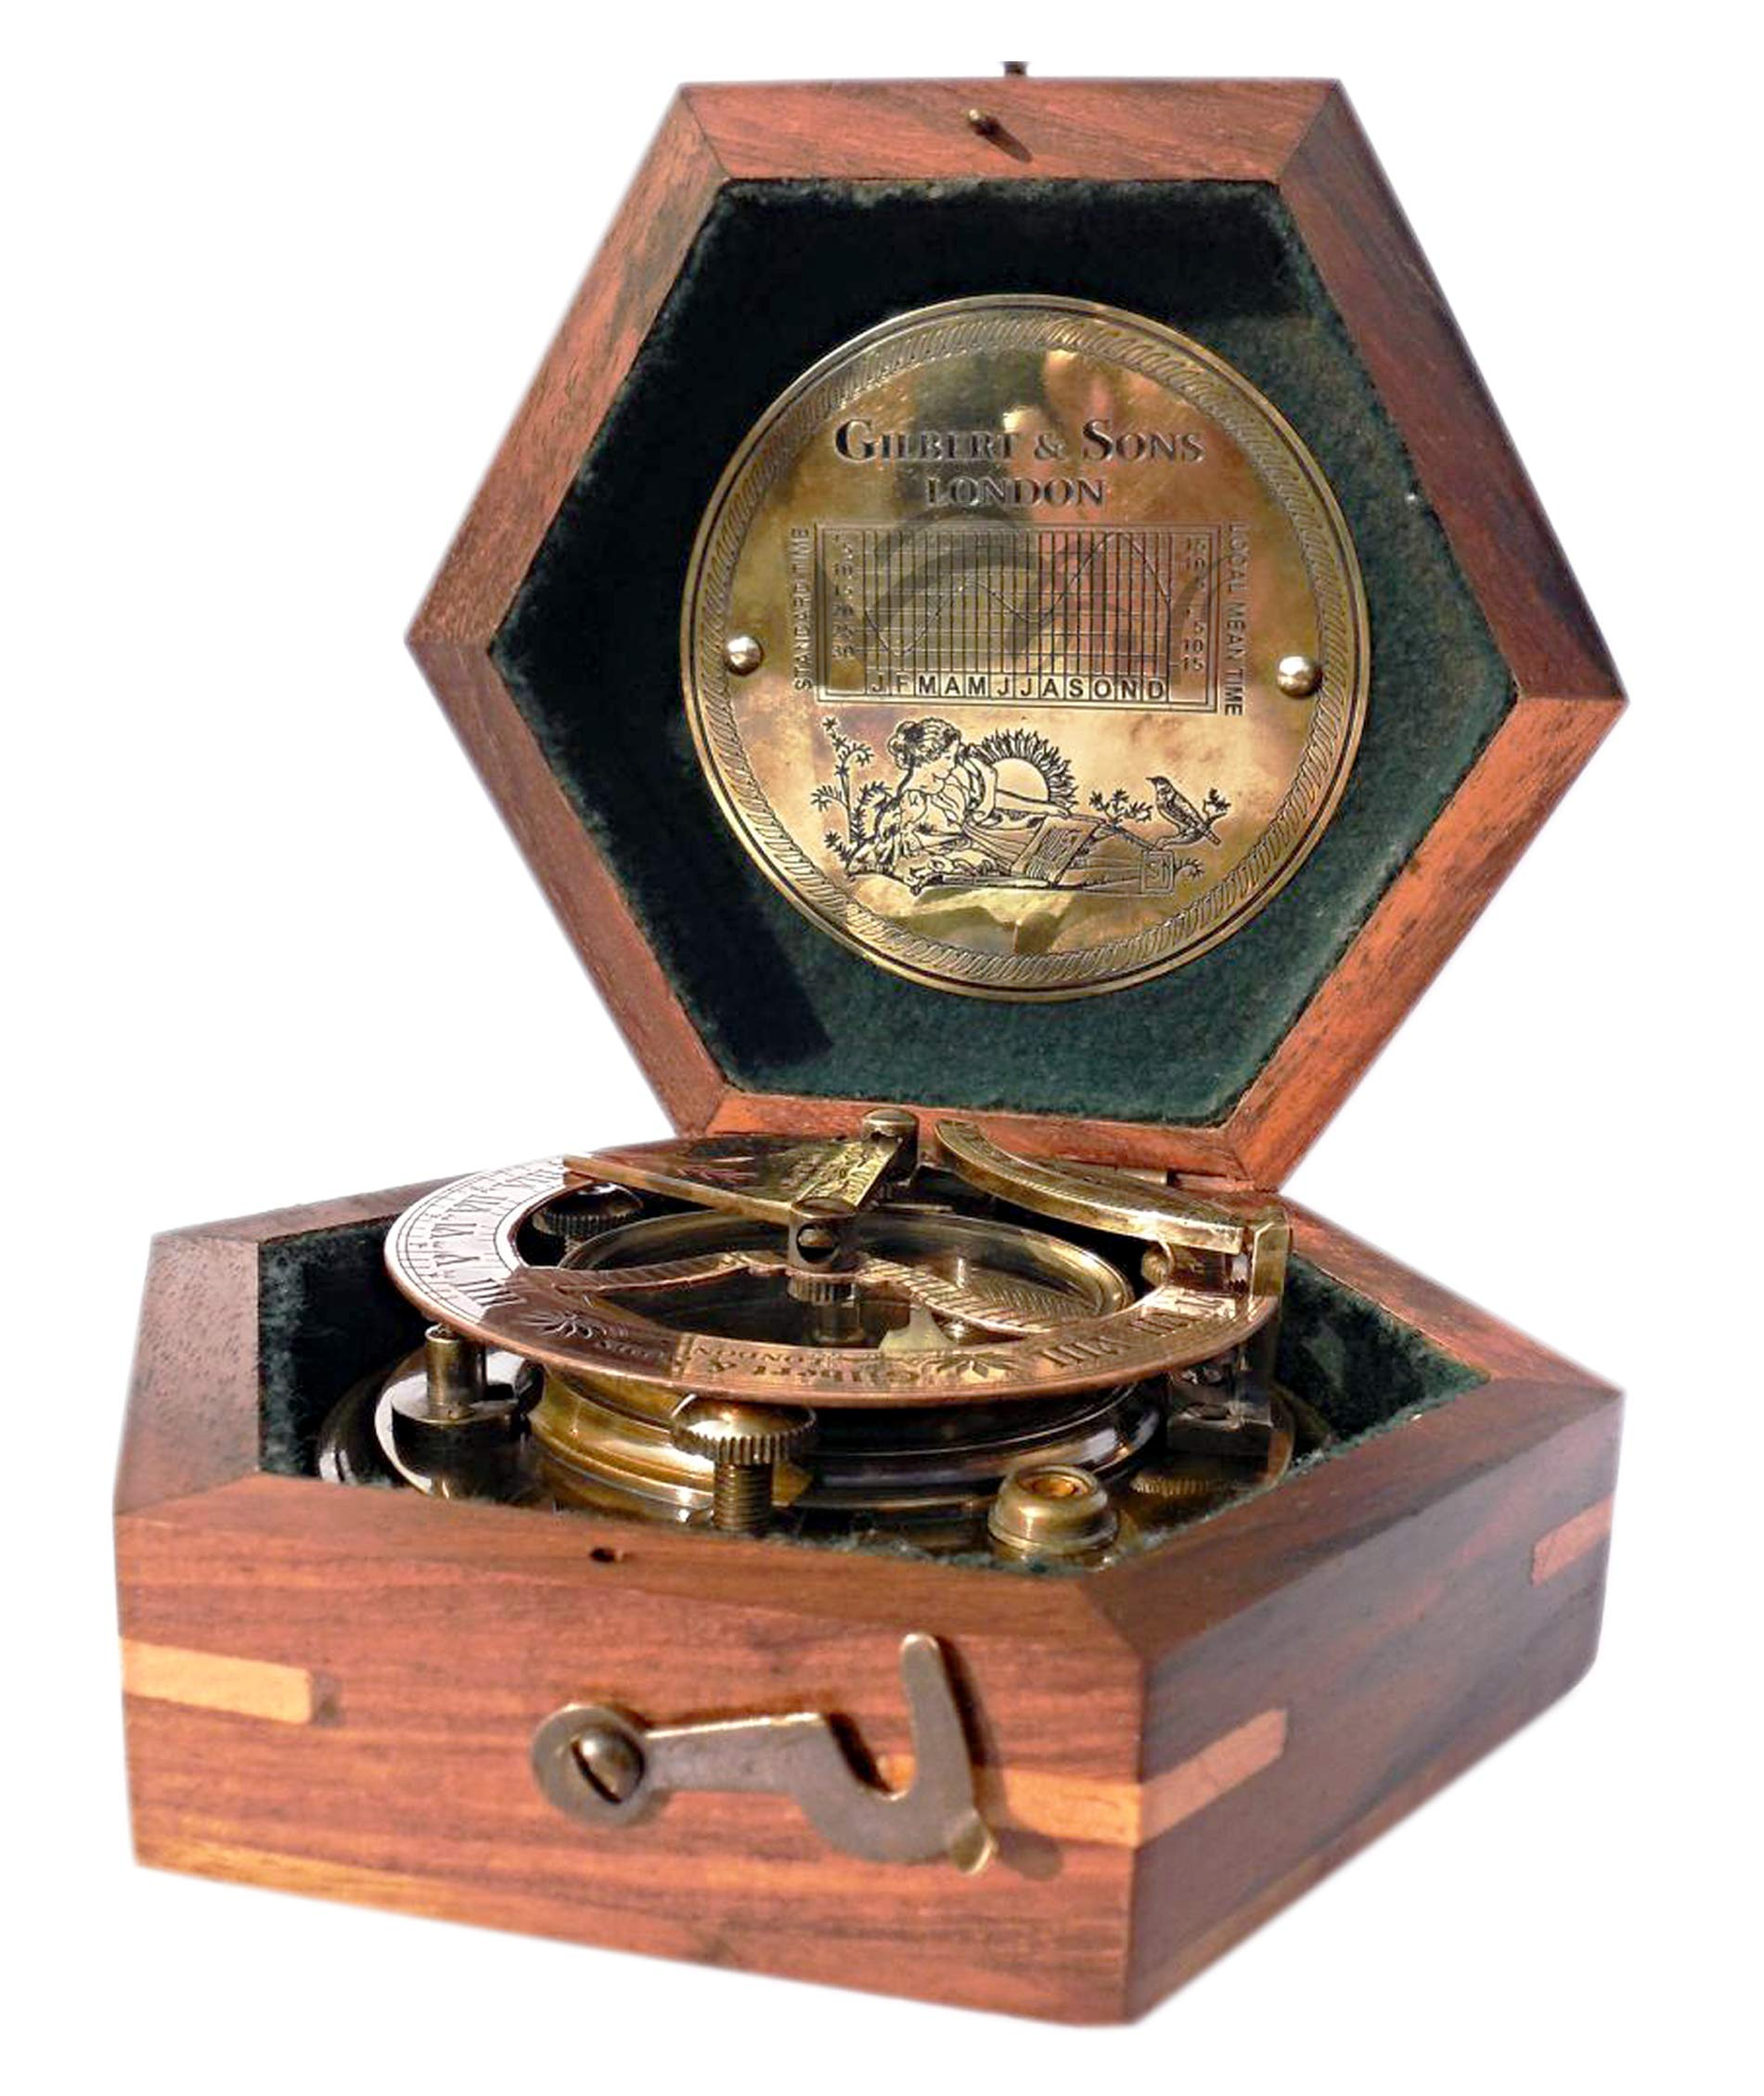 MAH Steampunk for Solid brass Sundial Compass in fitted Wooden Box. C-3052 by MAH